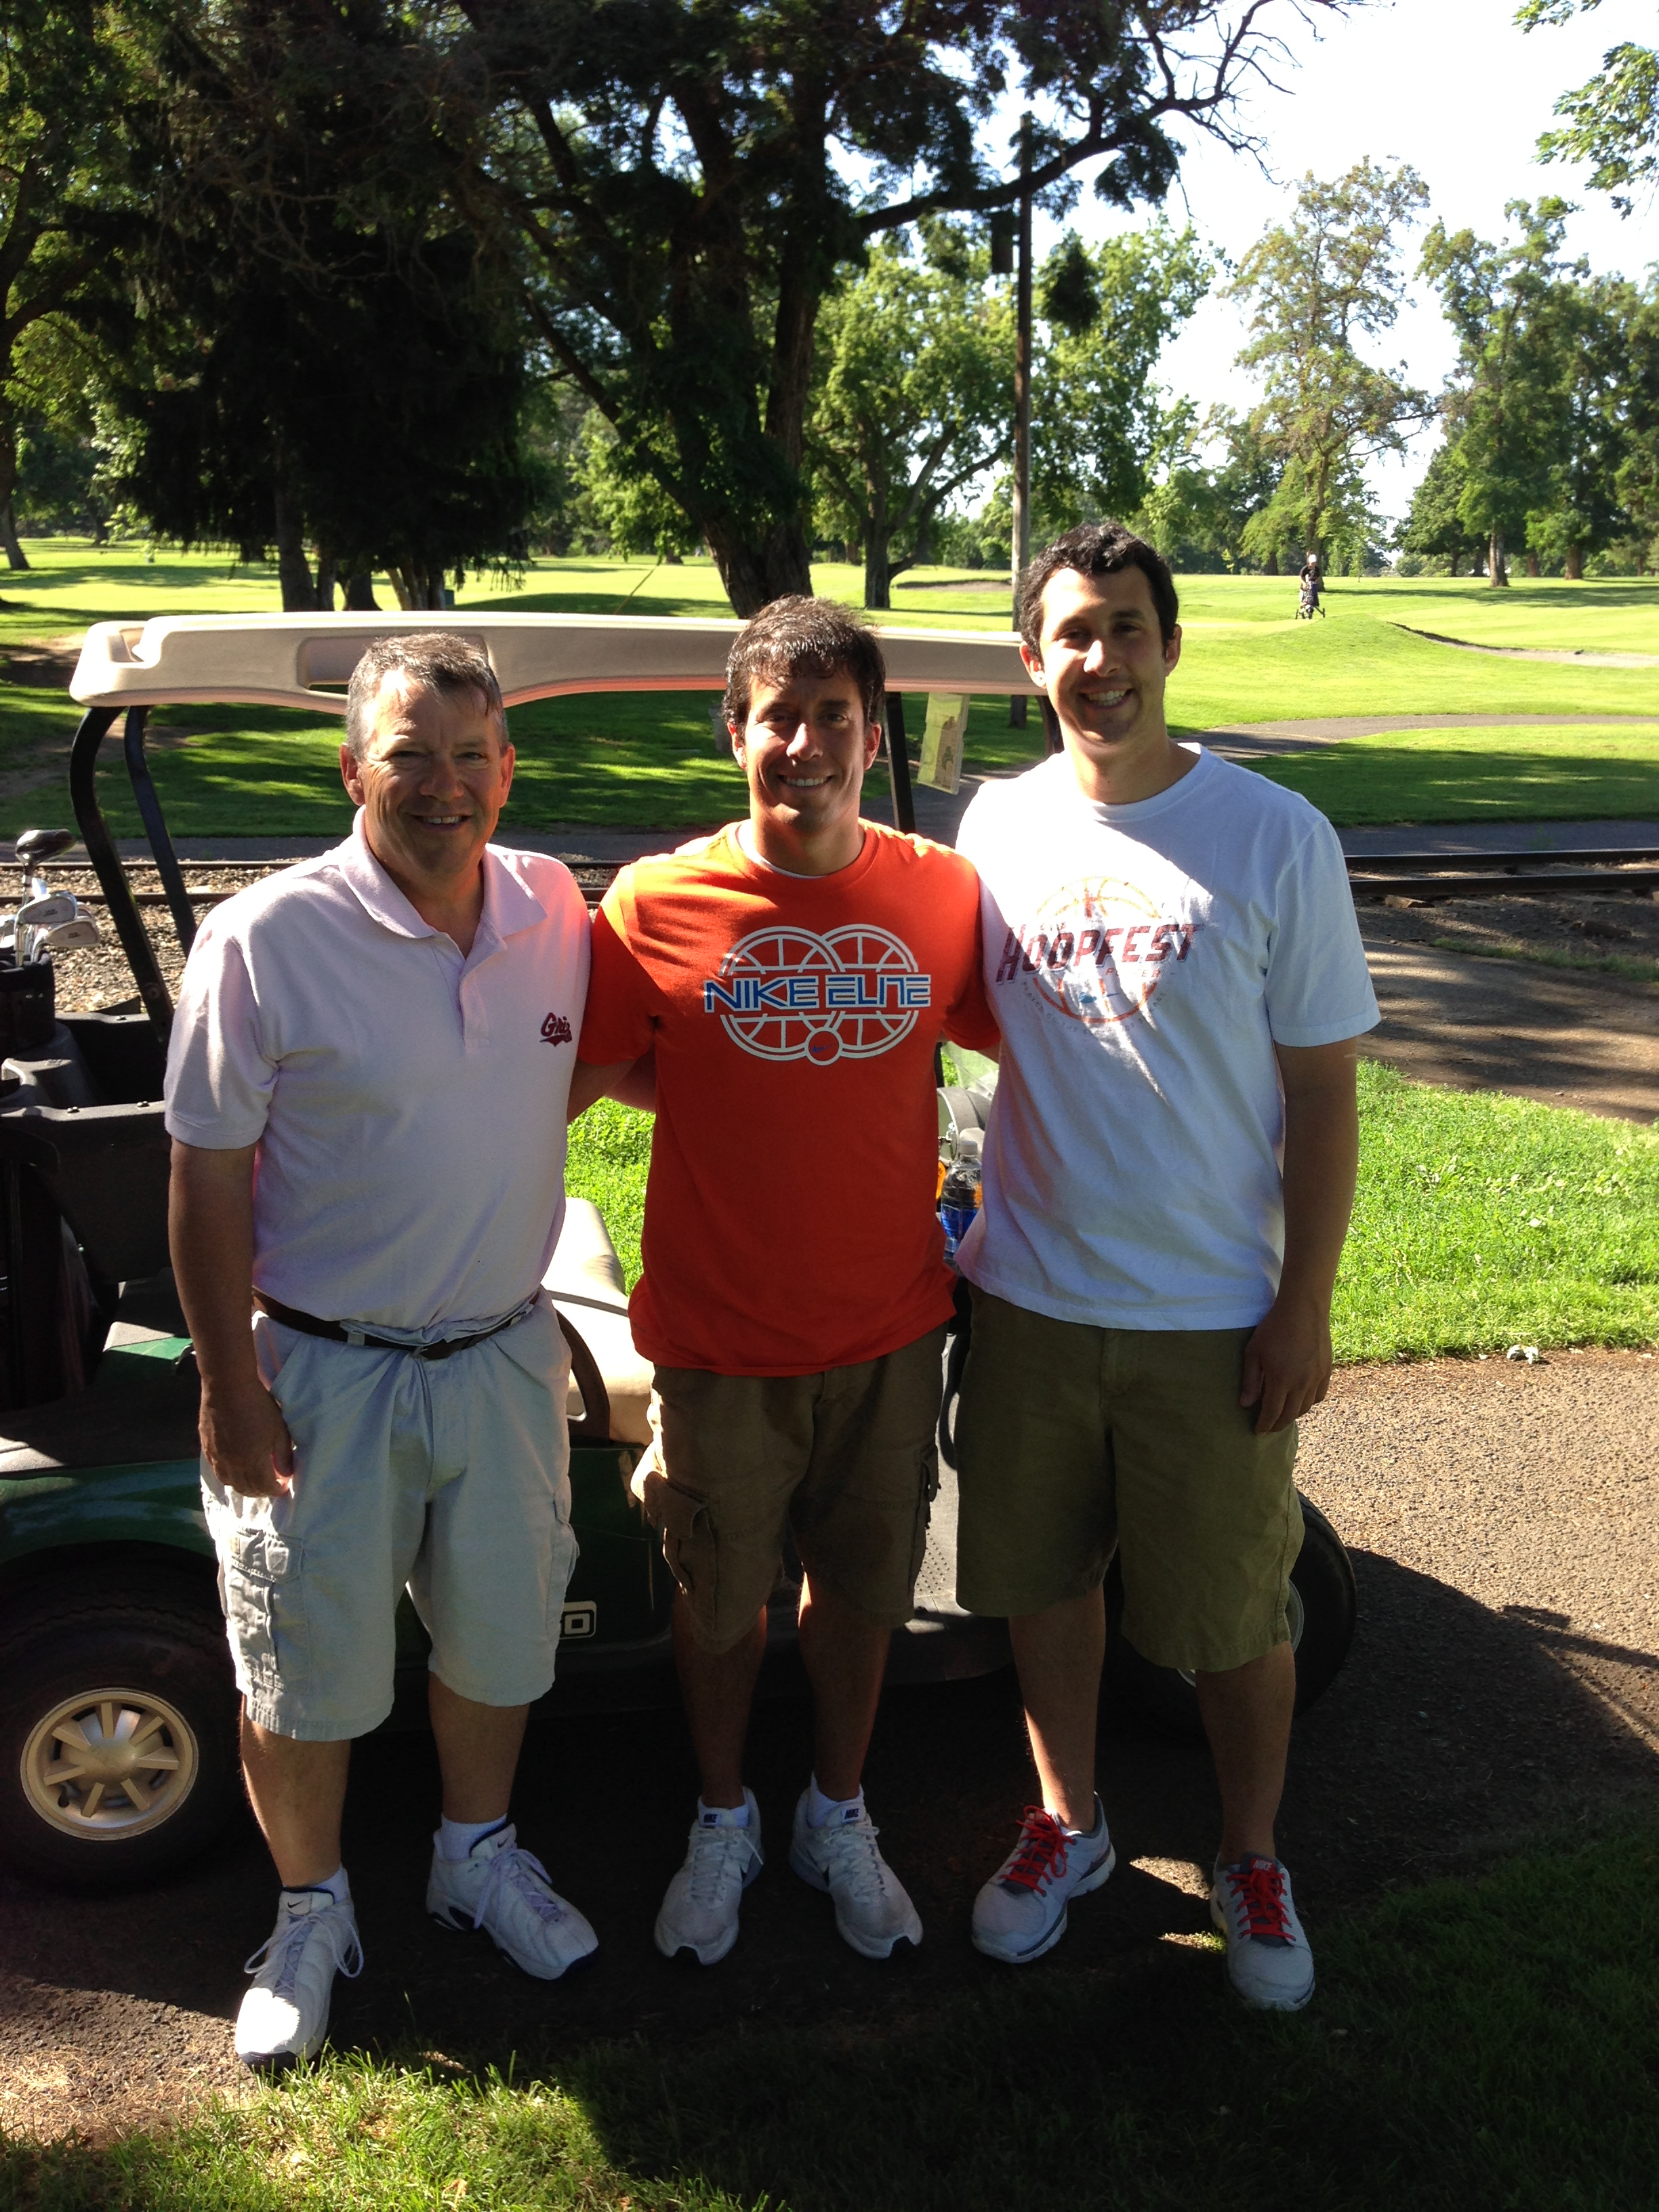 Golf was one activity that made this month great...playing with my dad and bro made it even better.